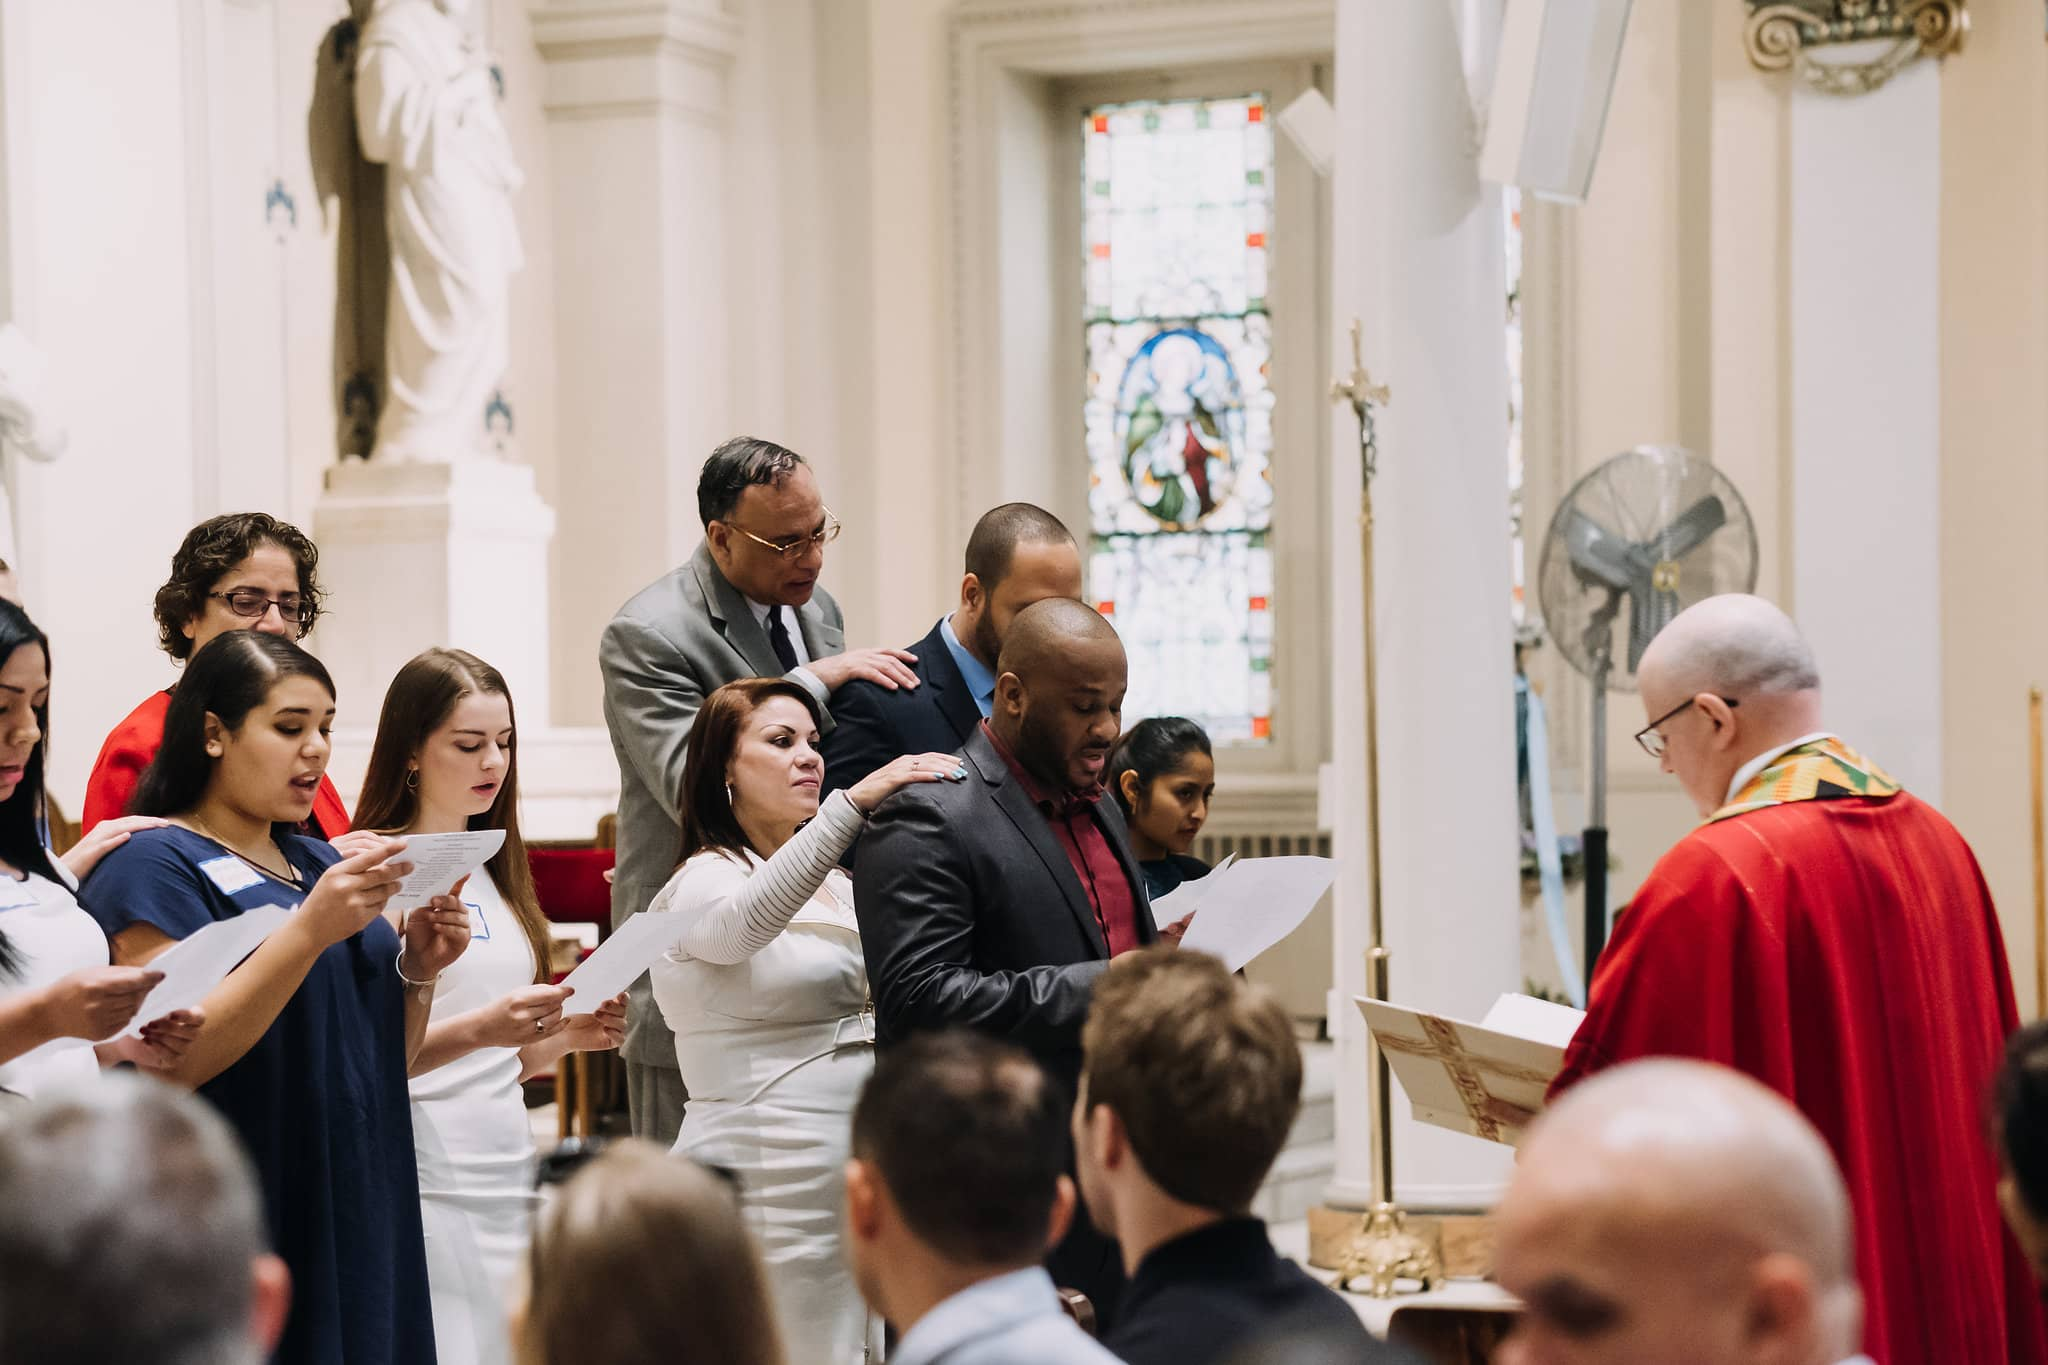 confirmation-adults-mass-st-francis-de-sales-church-new-york-city.jpg